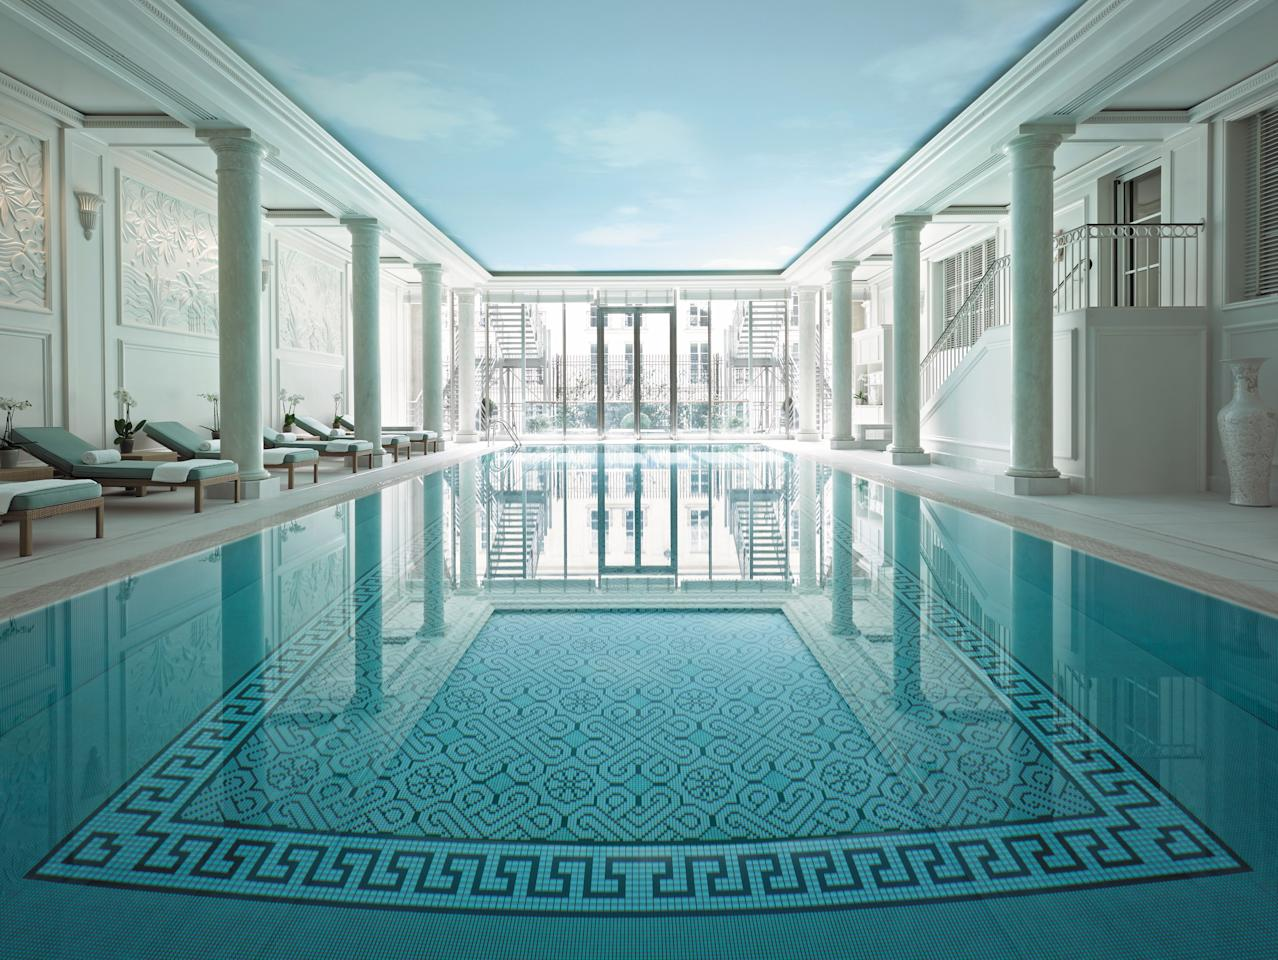 Paris's <strong>Shangri-La Hotel</strong> includes an indoor pool that's the very definition of serenity. Designed by architect Richard Martinet and interior designer Pierre-Yves Rochon, is located in what were the stables of Prince Roland Bonaparte's hôtel particulier.